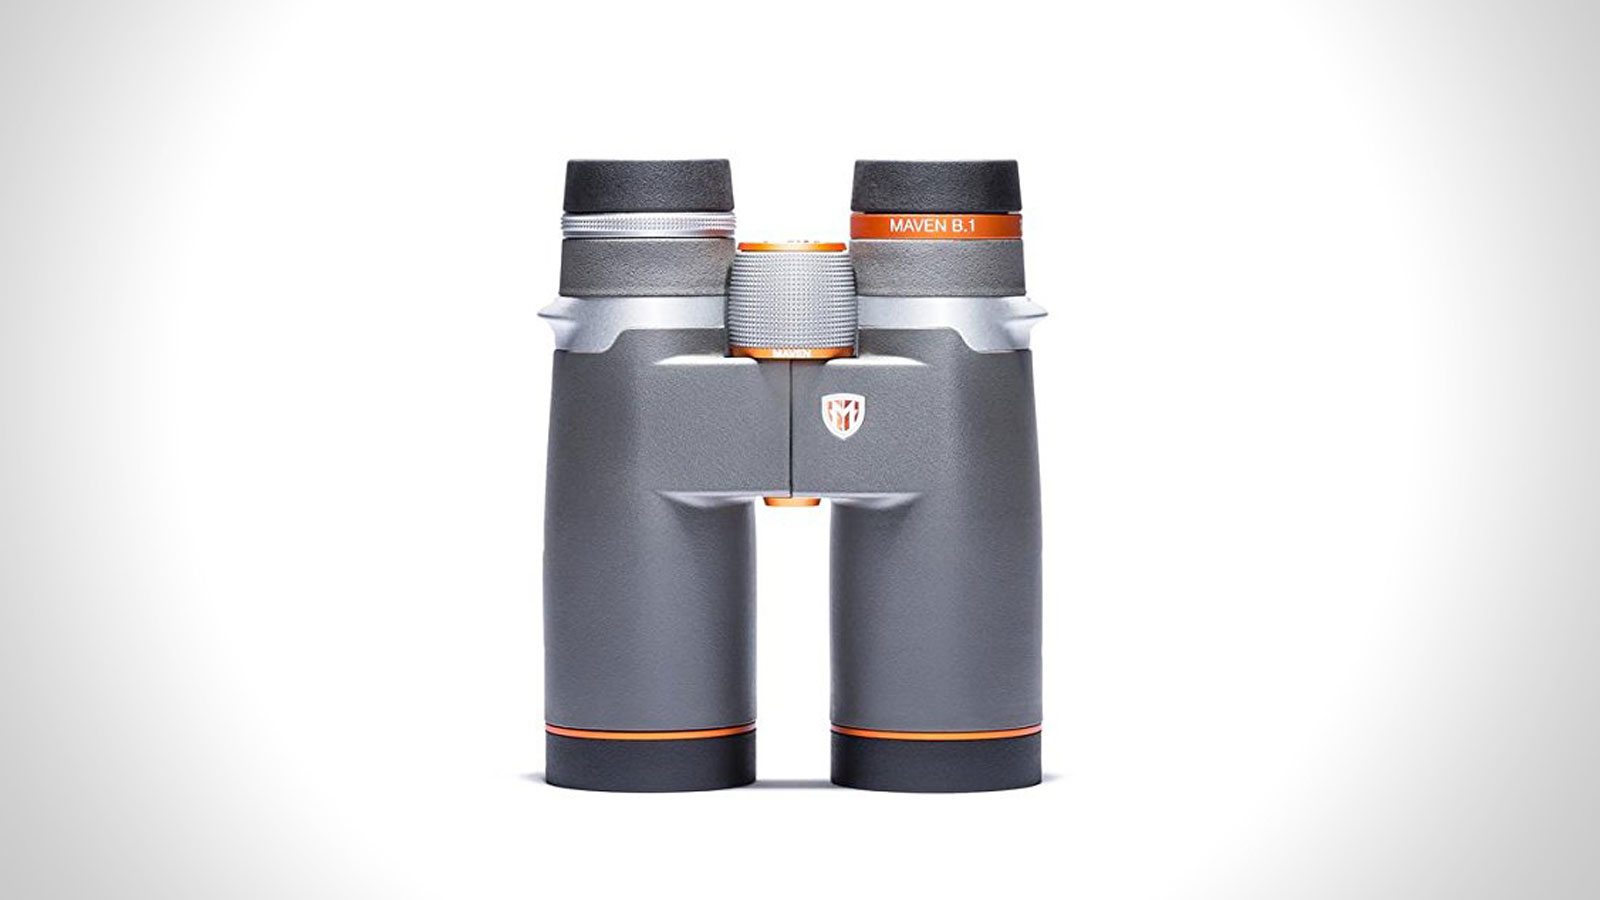 Maven Binoculars | Gifts For Men | Gifts For Outdoorsmen